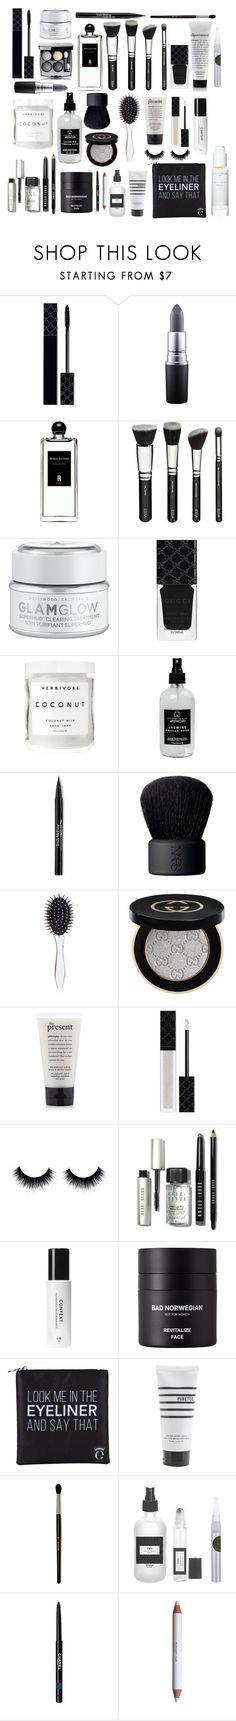 """Beauty Must - Haves"" by luxurylust-x ❤ liked on Polyvore featuring beauty, Gucci, MAC Cosmetics, Serge Lutens, GlamGlow, Herbivore, Little Barn Apothecary, Trish McEvoy, NARS Cosmetics and New Look"